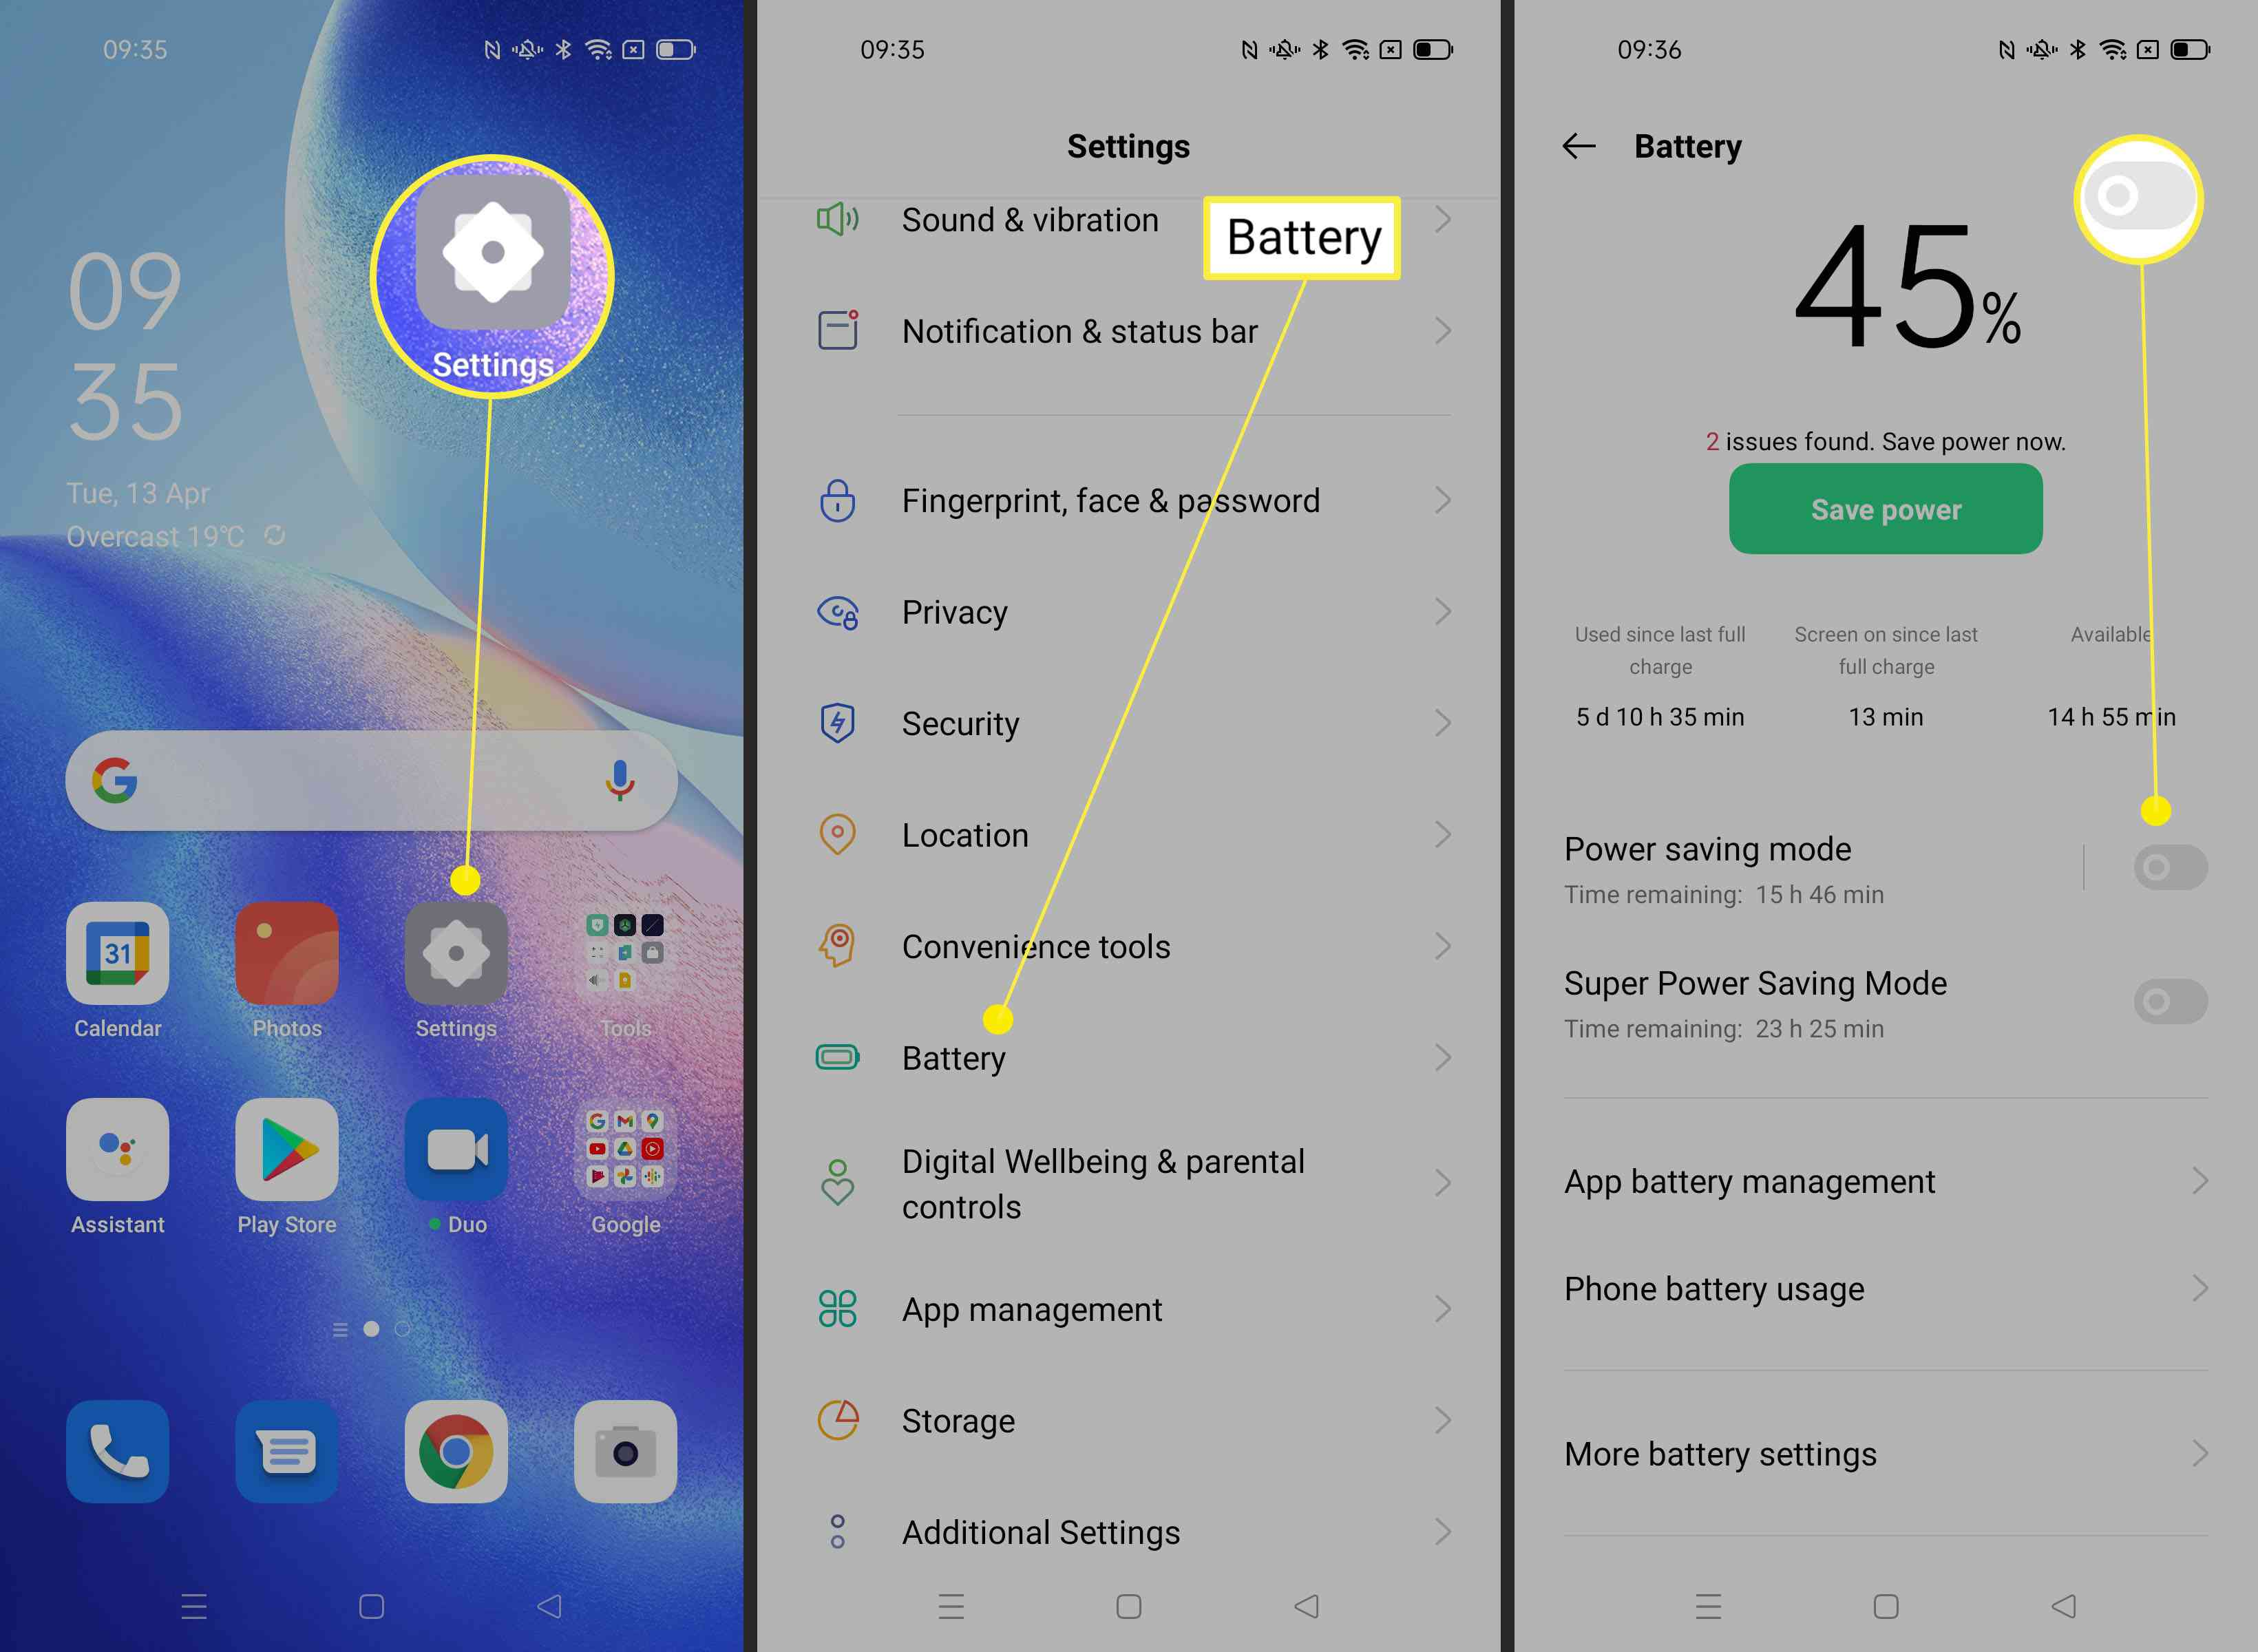 Steps required to toggle on Power Saving Mode on Android